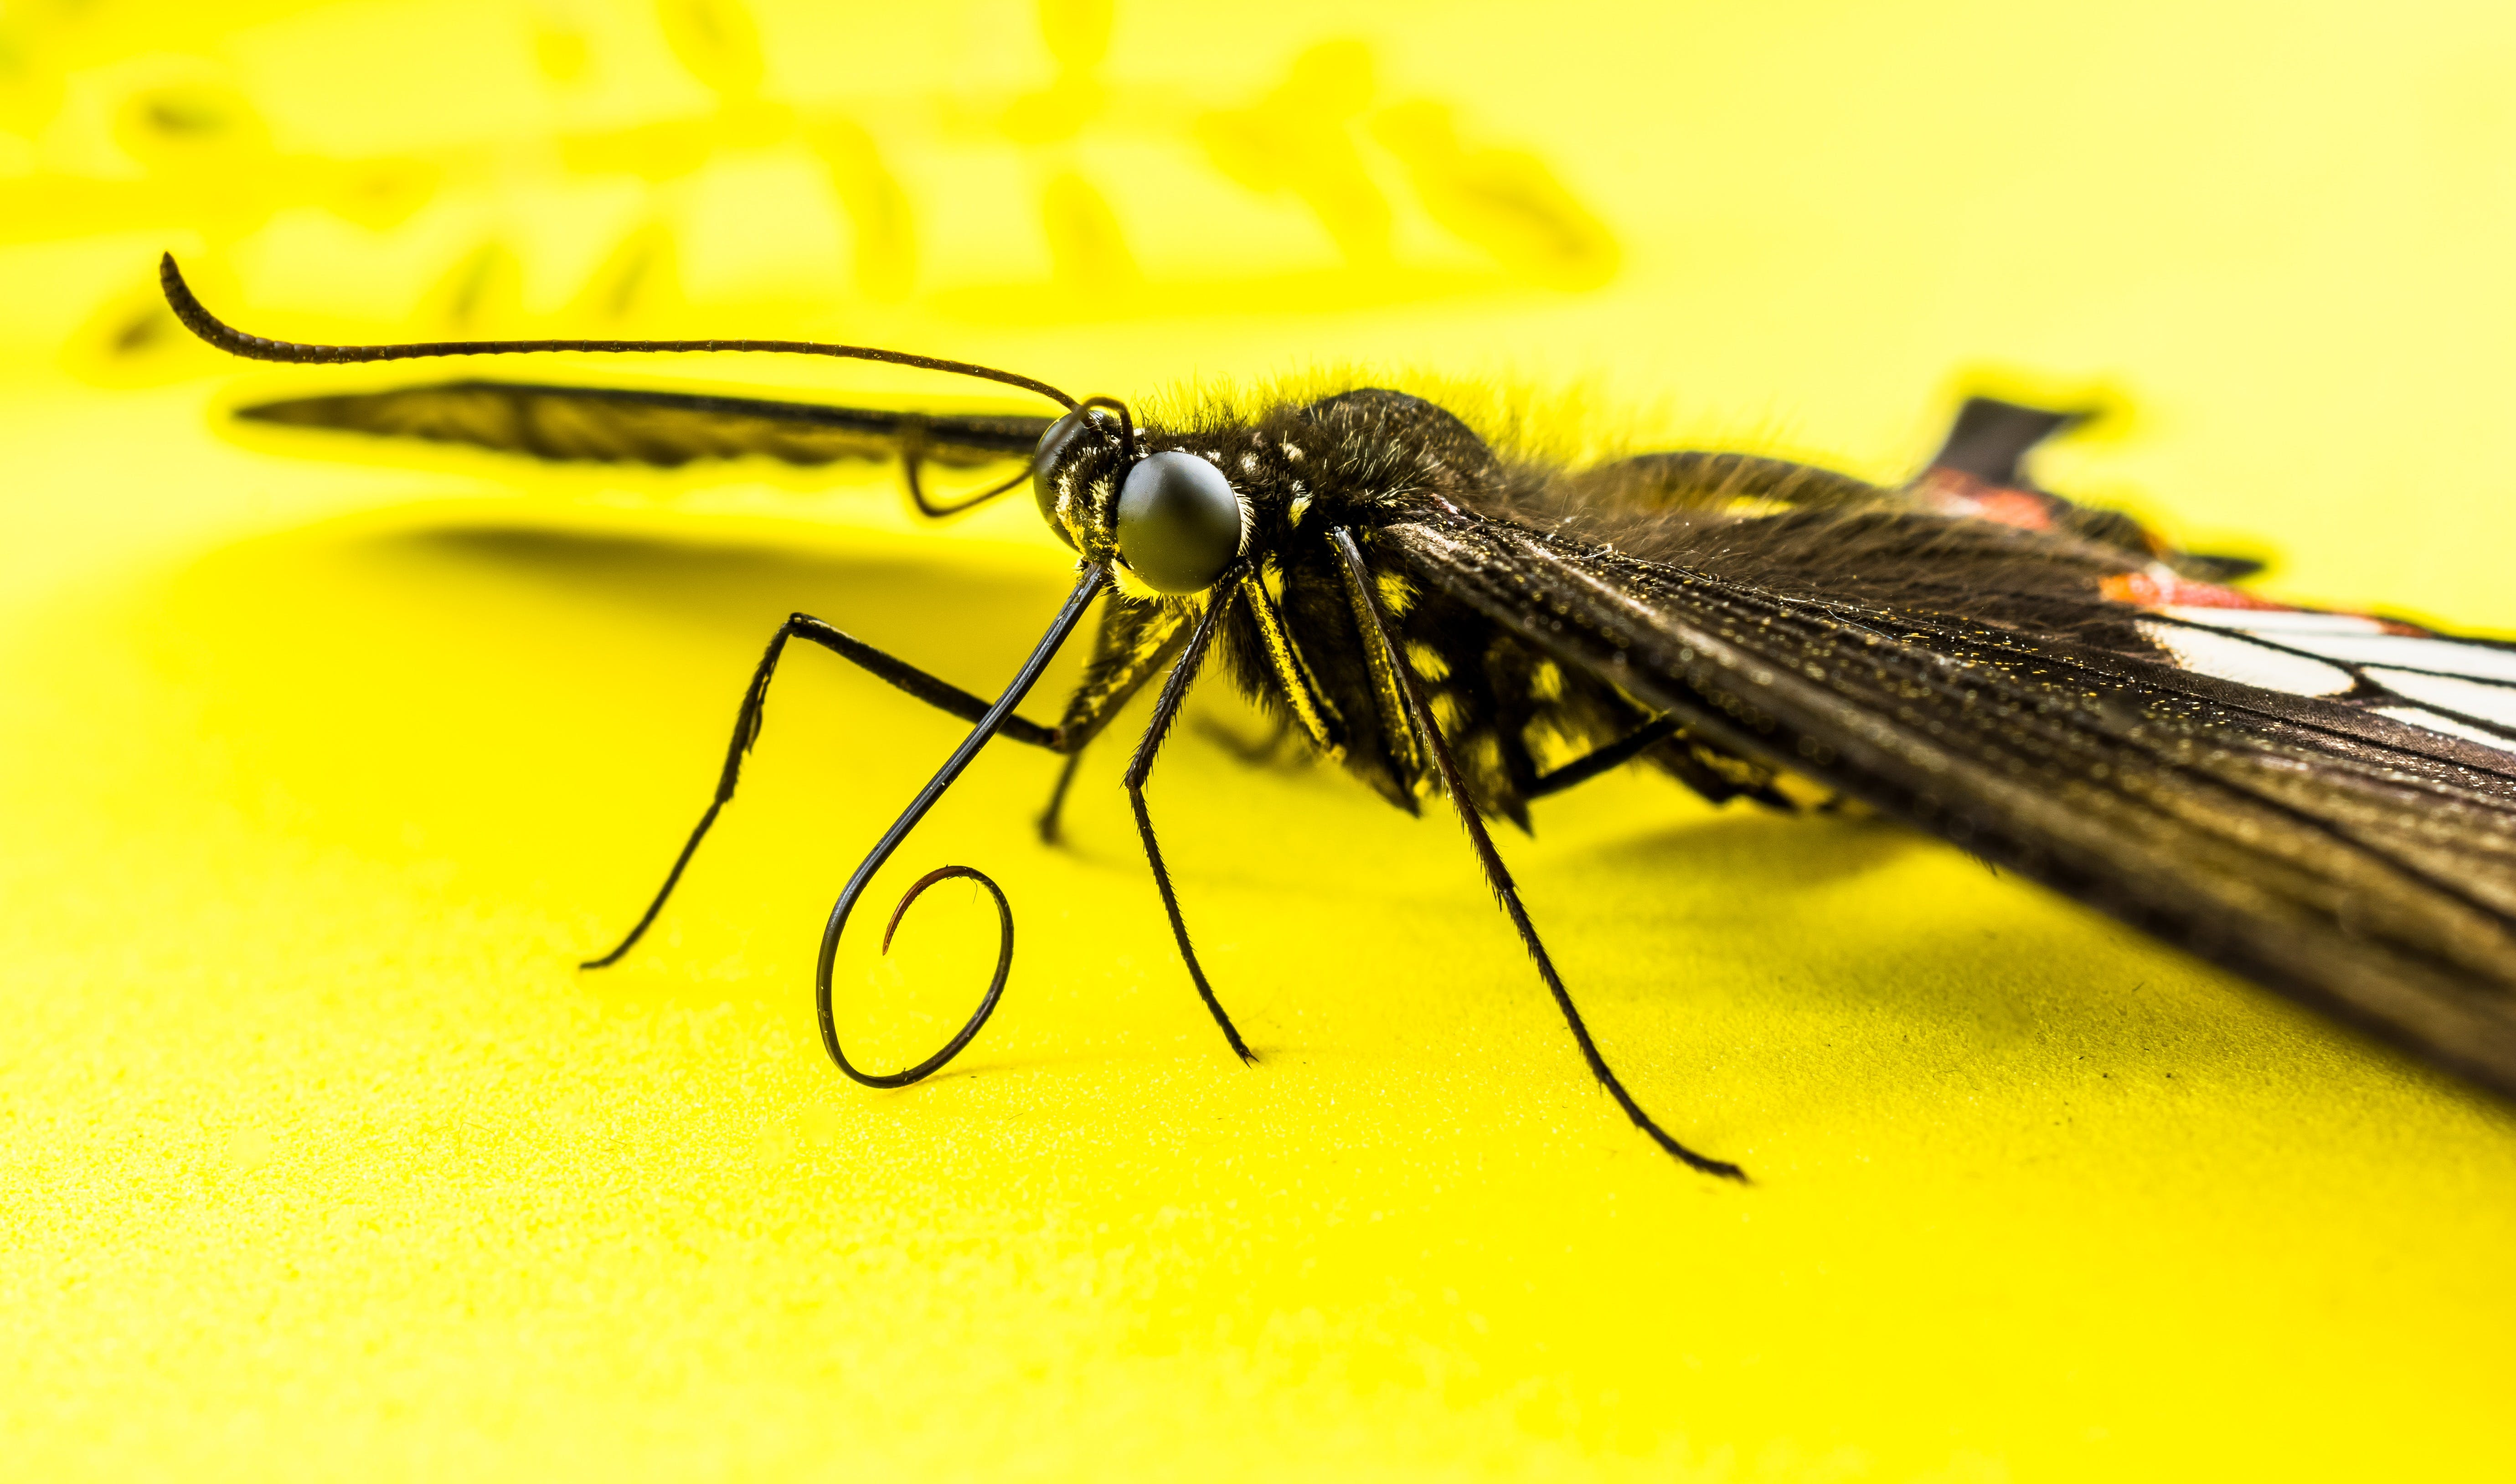 Closeup Shot of Black Butterfly on Yellow Surface